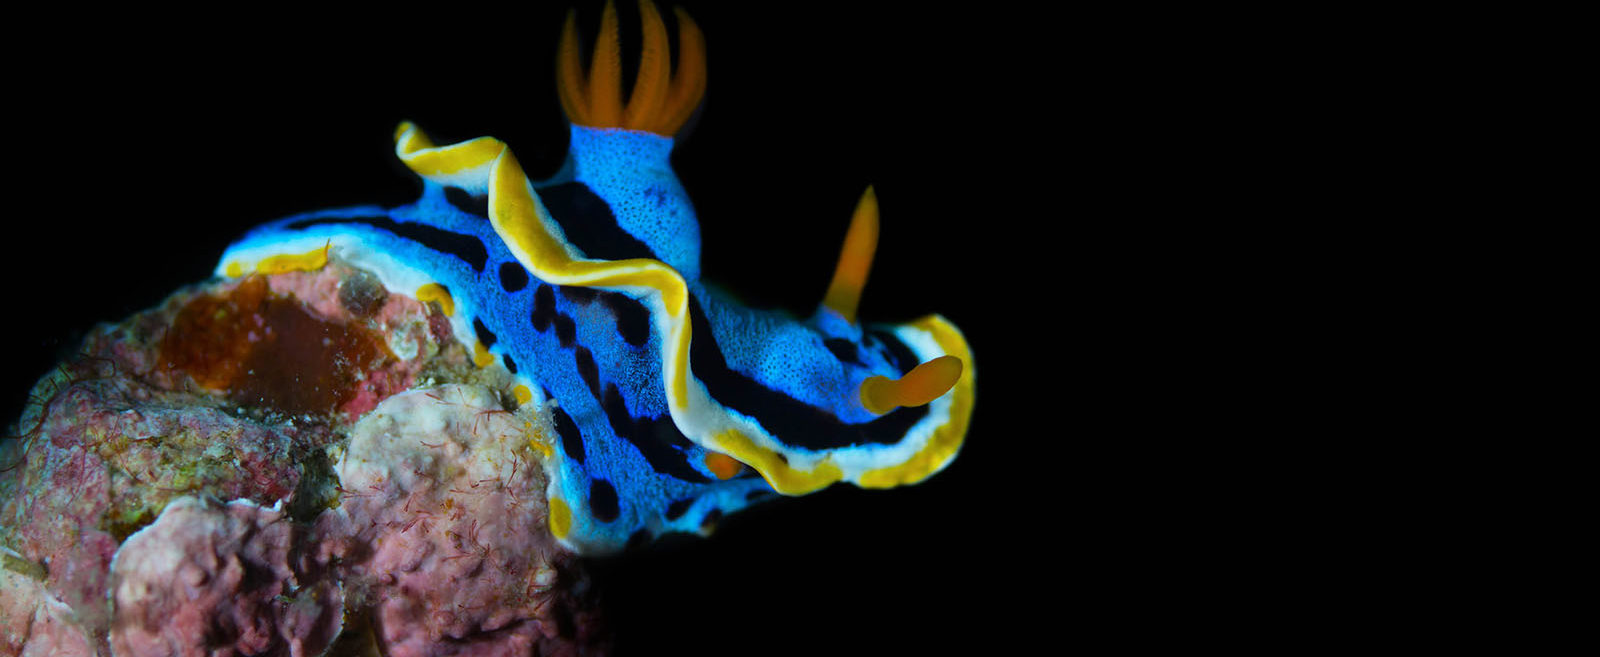 Philippines, Moalboal, Nudi Branch